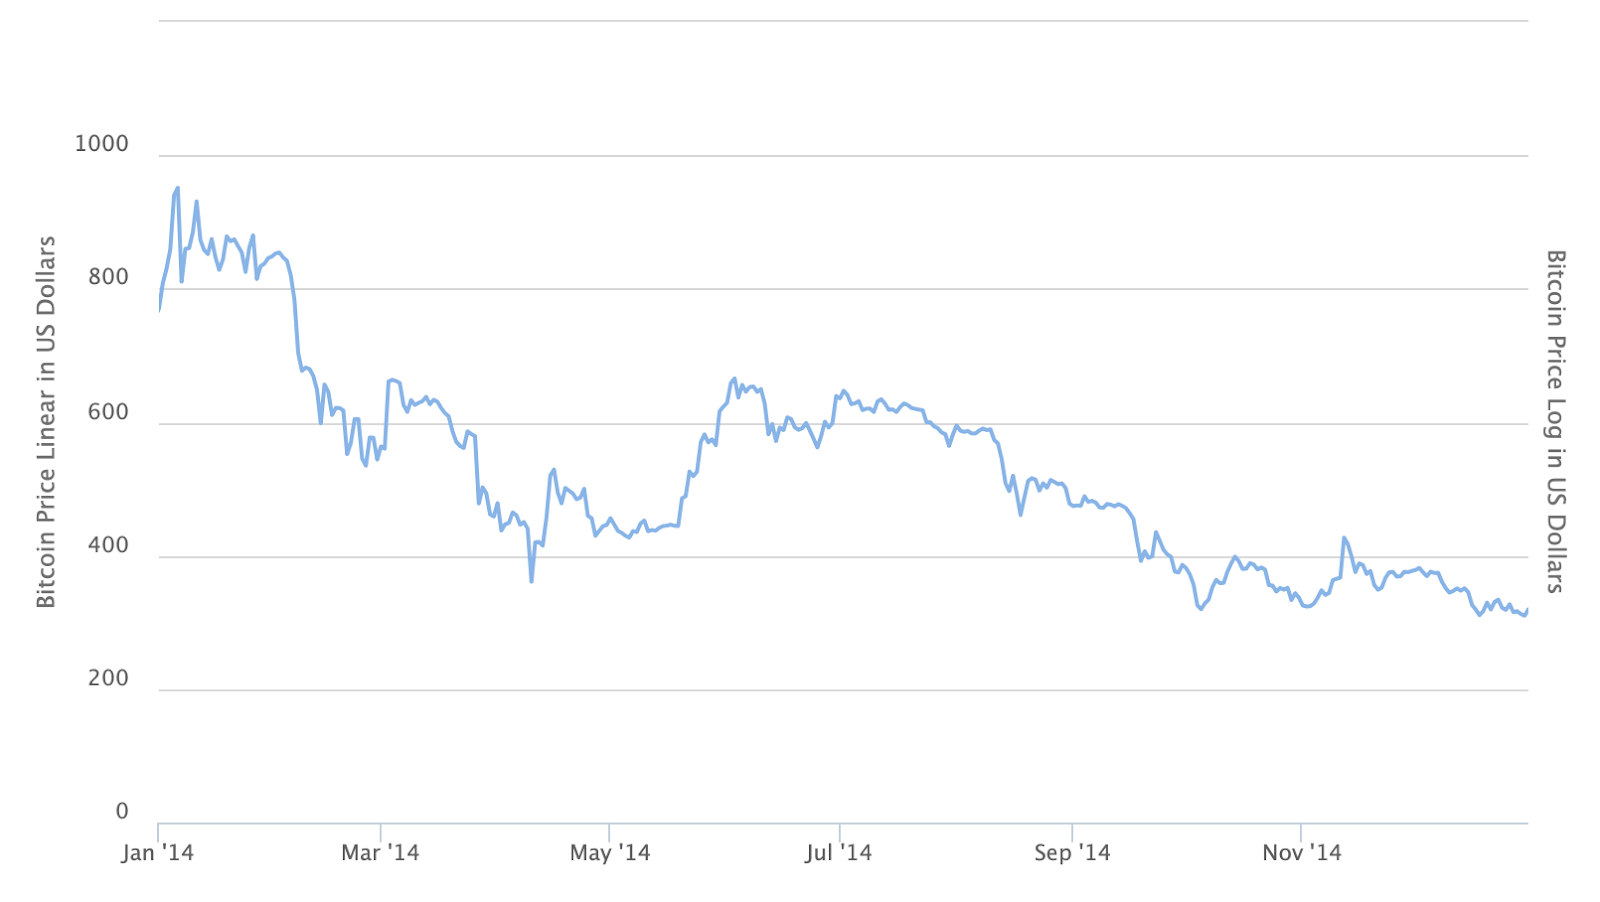 Bitcoin price in 2014